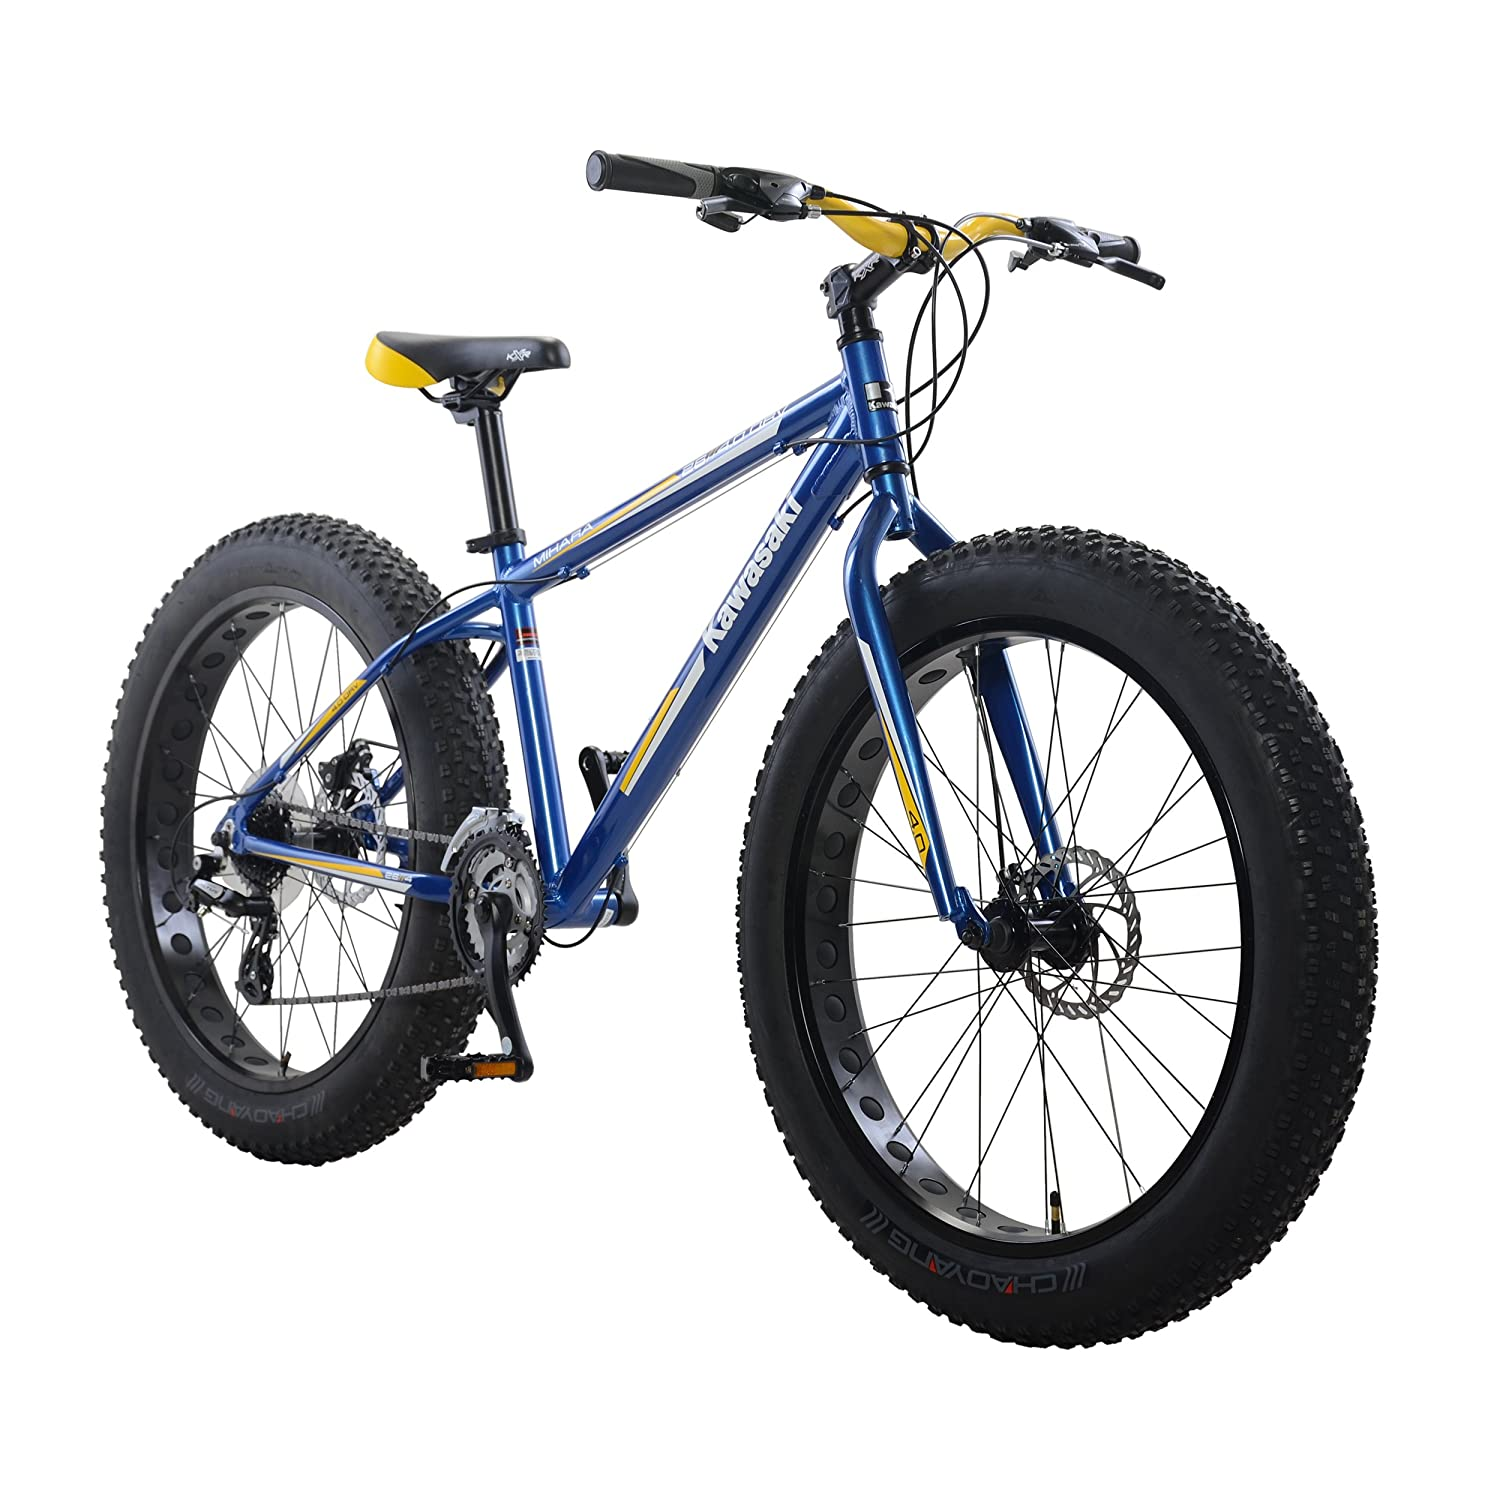 Kawasaki Nihara Fat Bike